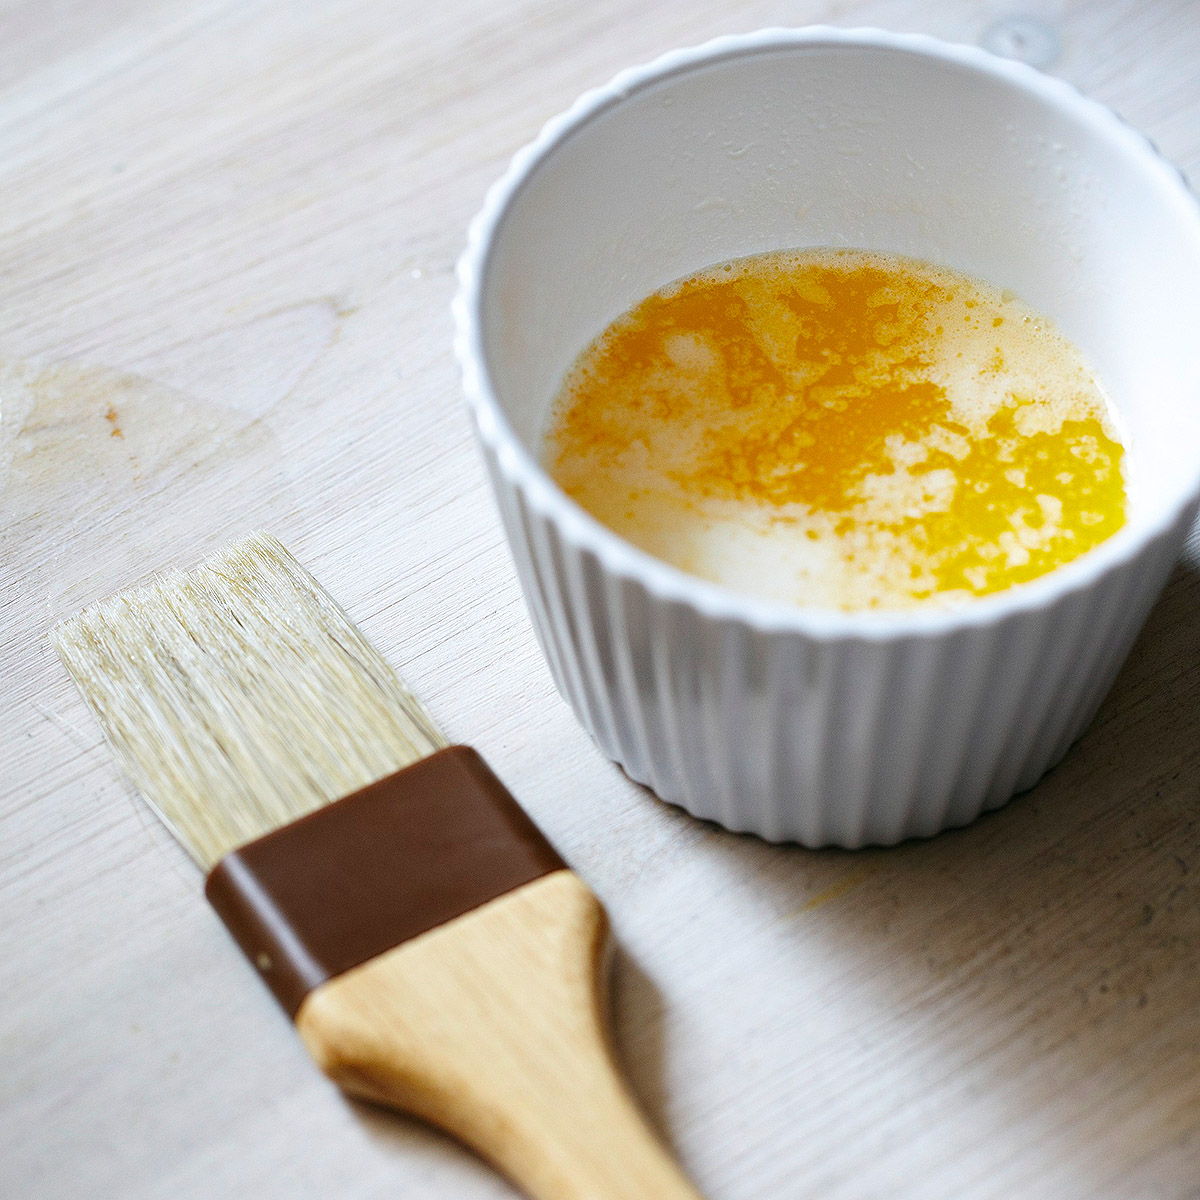 melted butter in dish